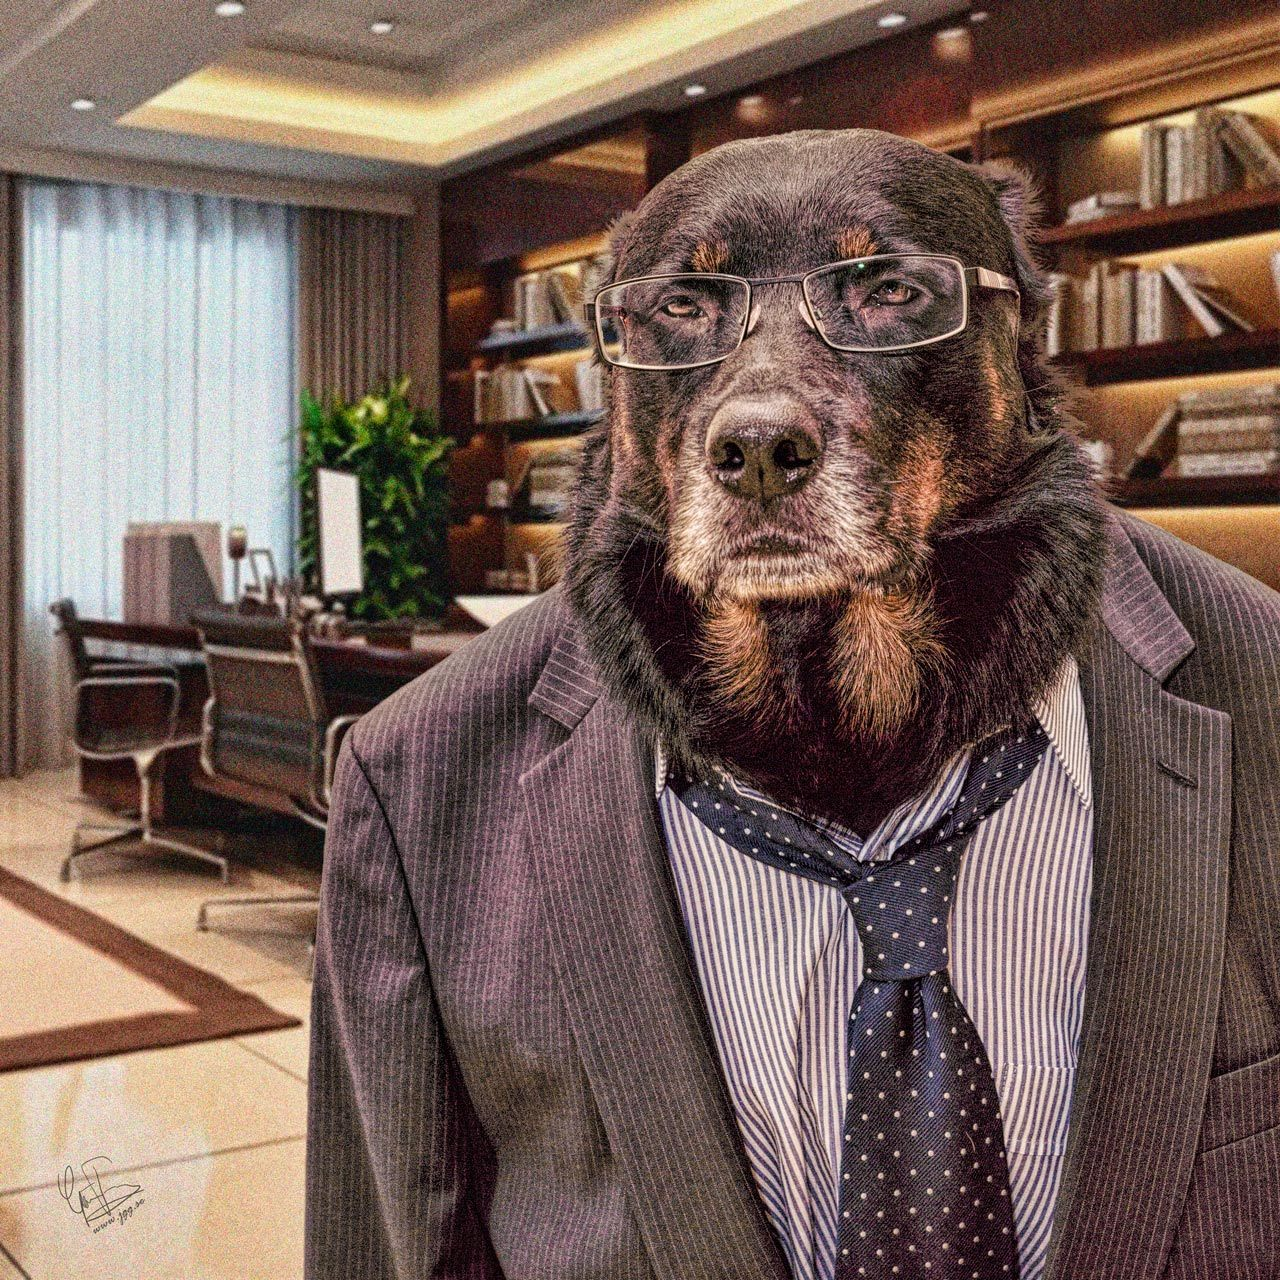 Barney the boss by Junglegeorge